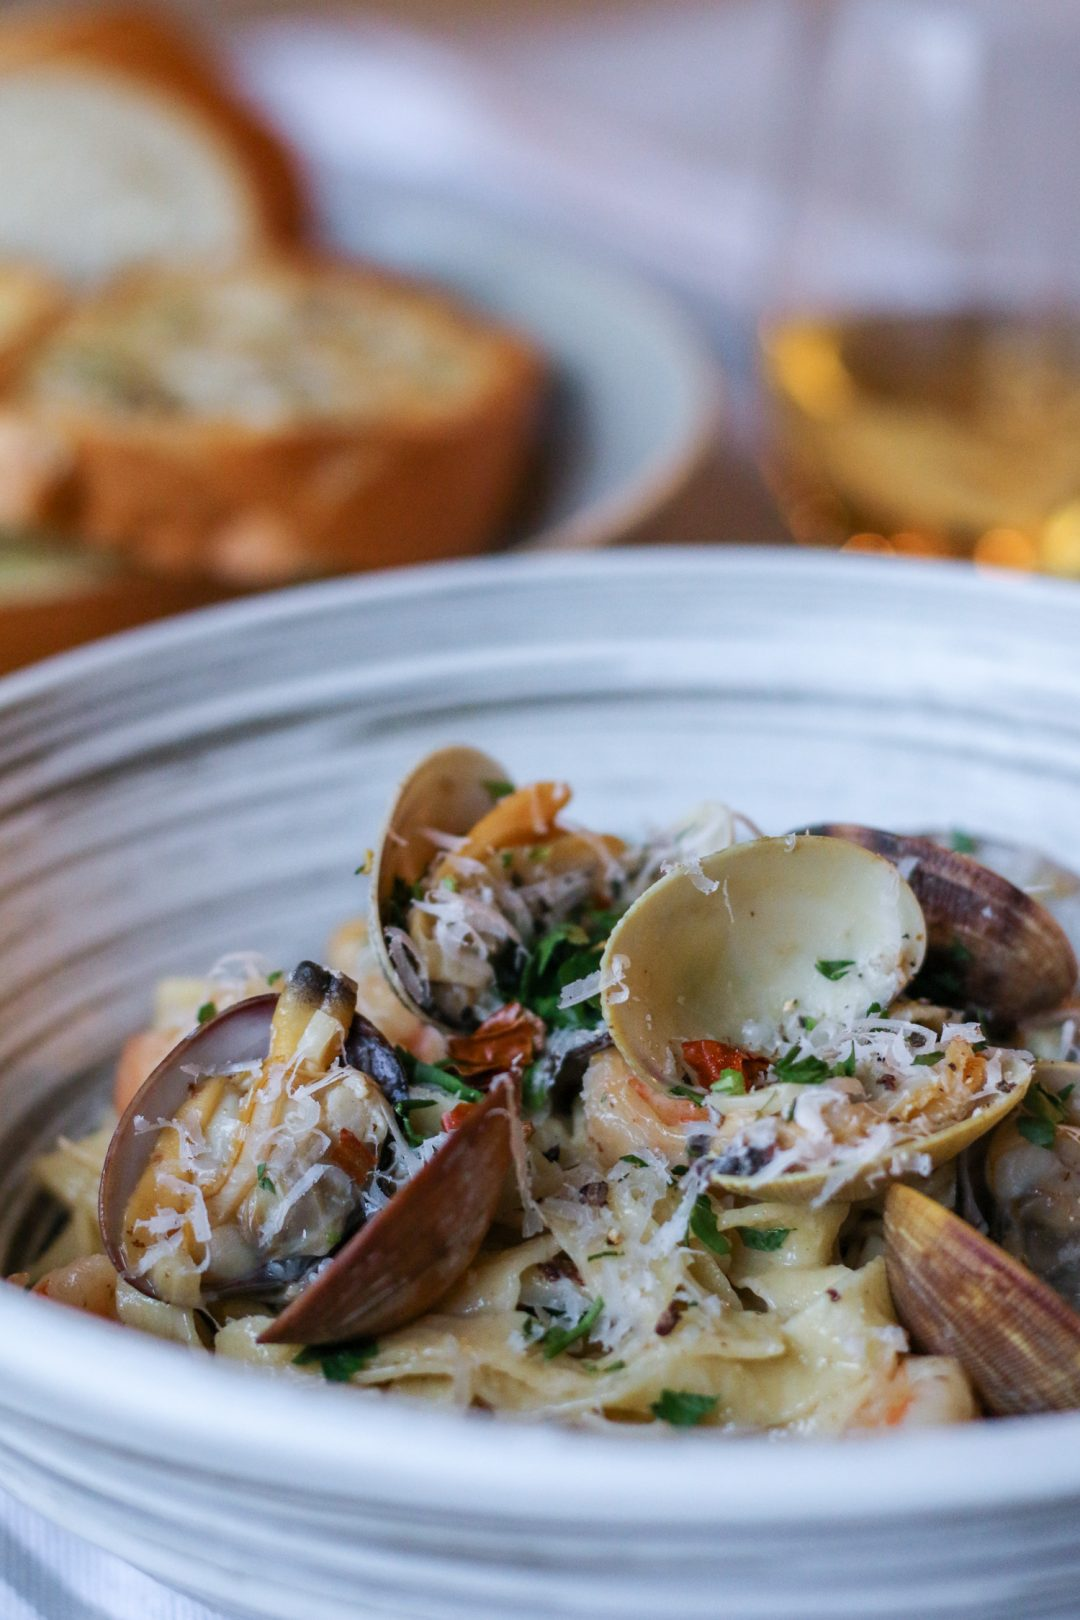 Homemade linguine and clams with creamy white wine sauce and garlic toast